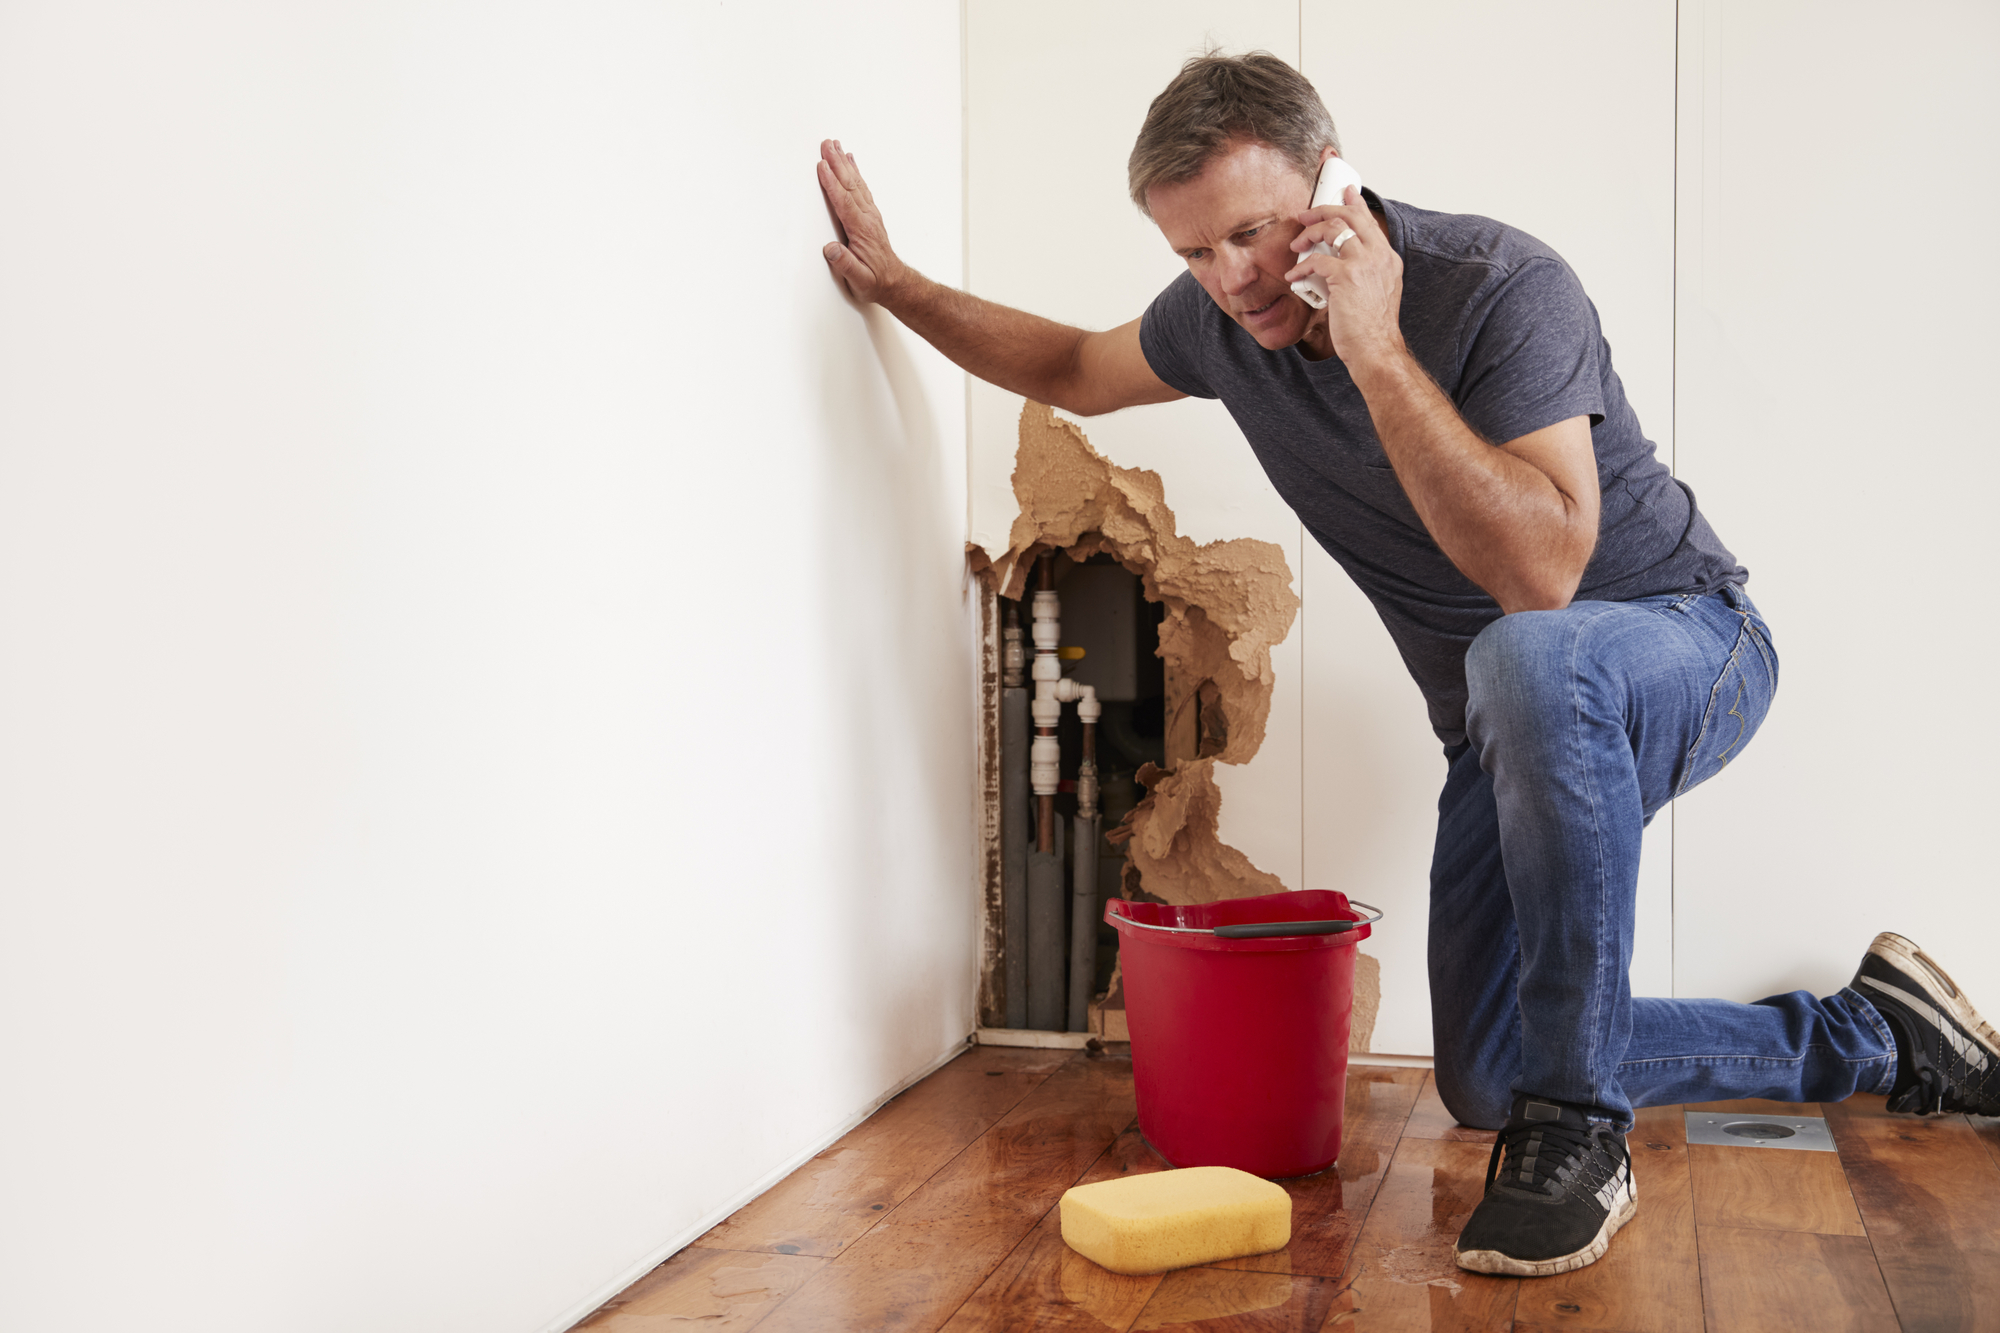 Middle aged man with a burst water pipe